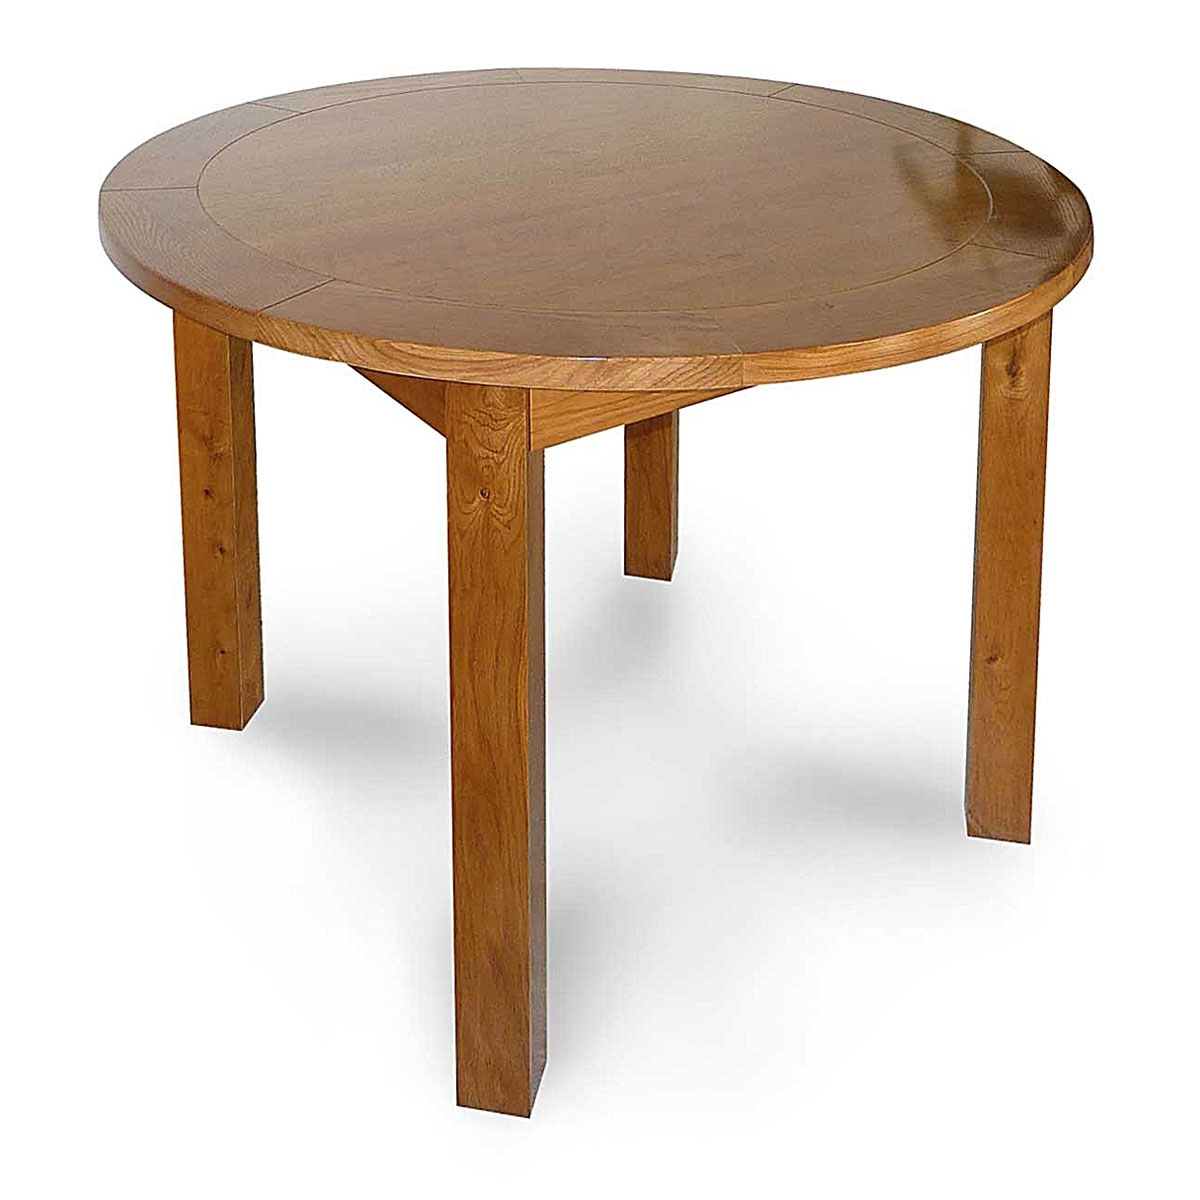 Small Round Extending Dining Tables For Widely Used Bretagne Dining – Willis & Gambier (View 16 of 25)